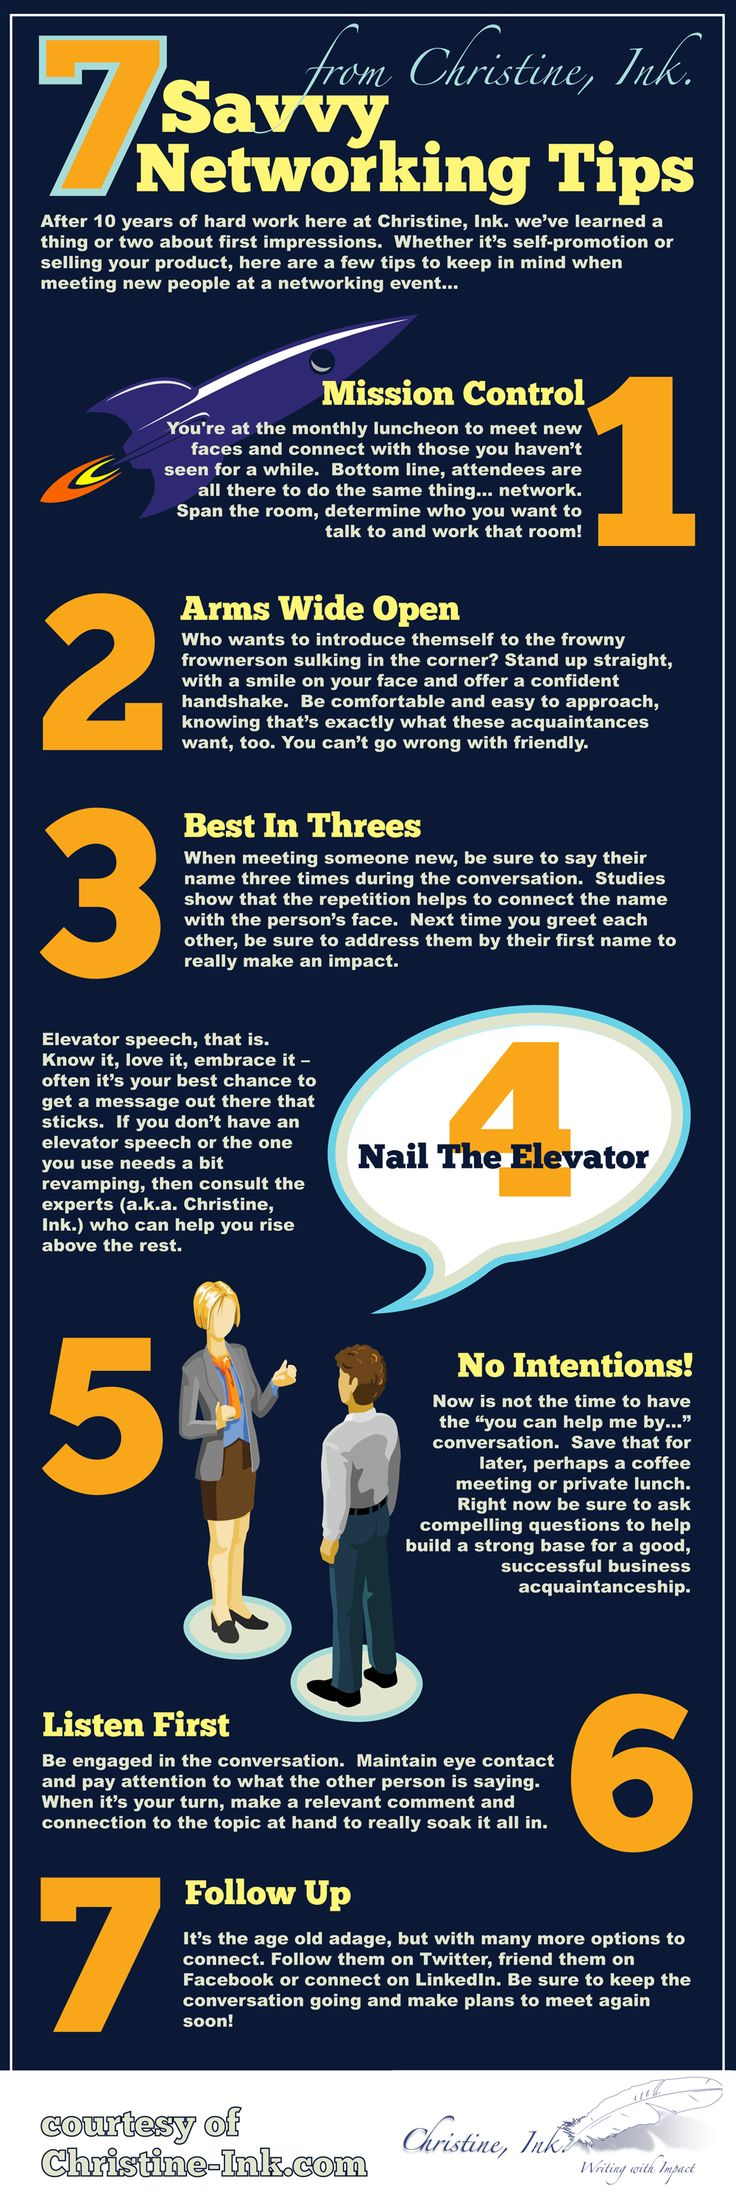 christineink_infographic_2013-05_final.png (1000×3001)